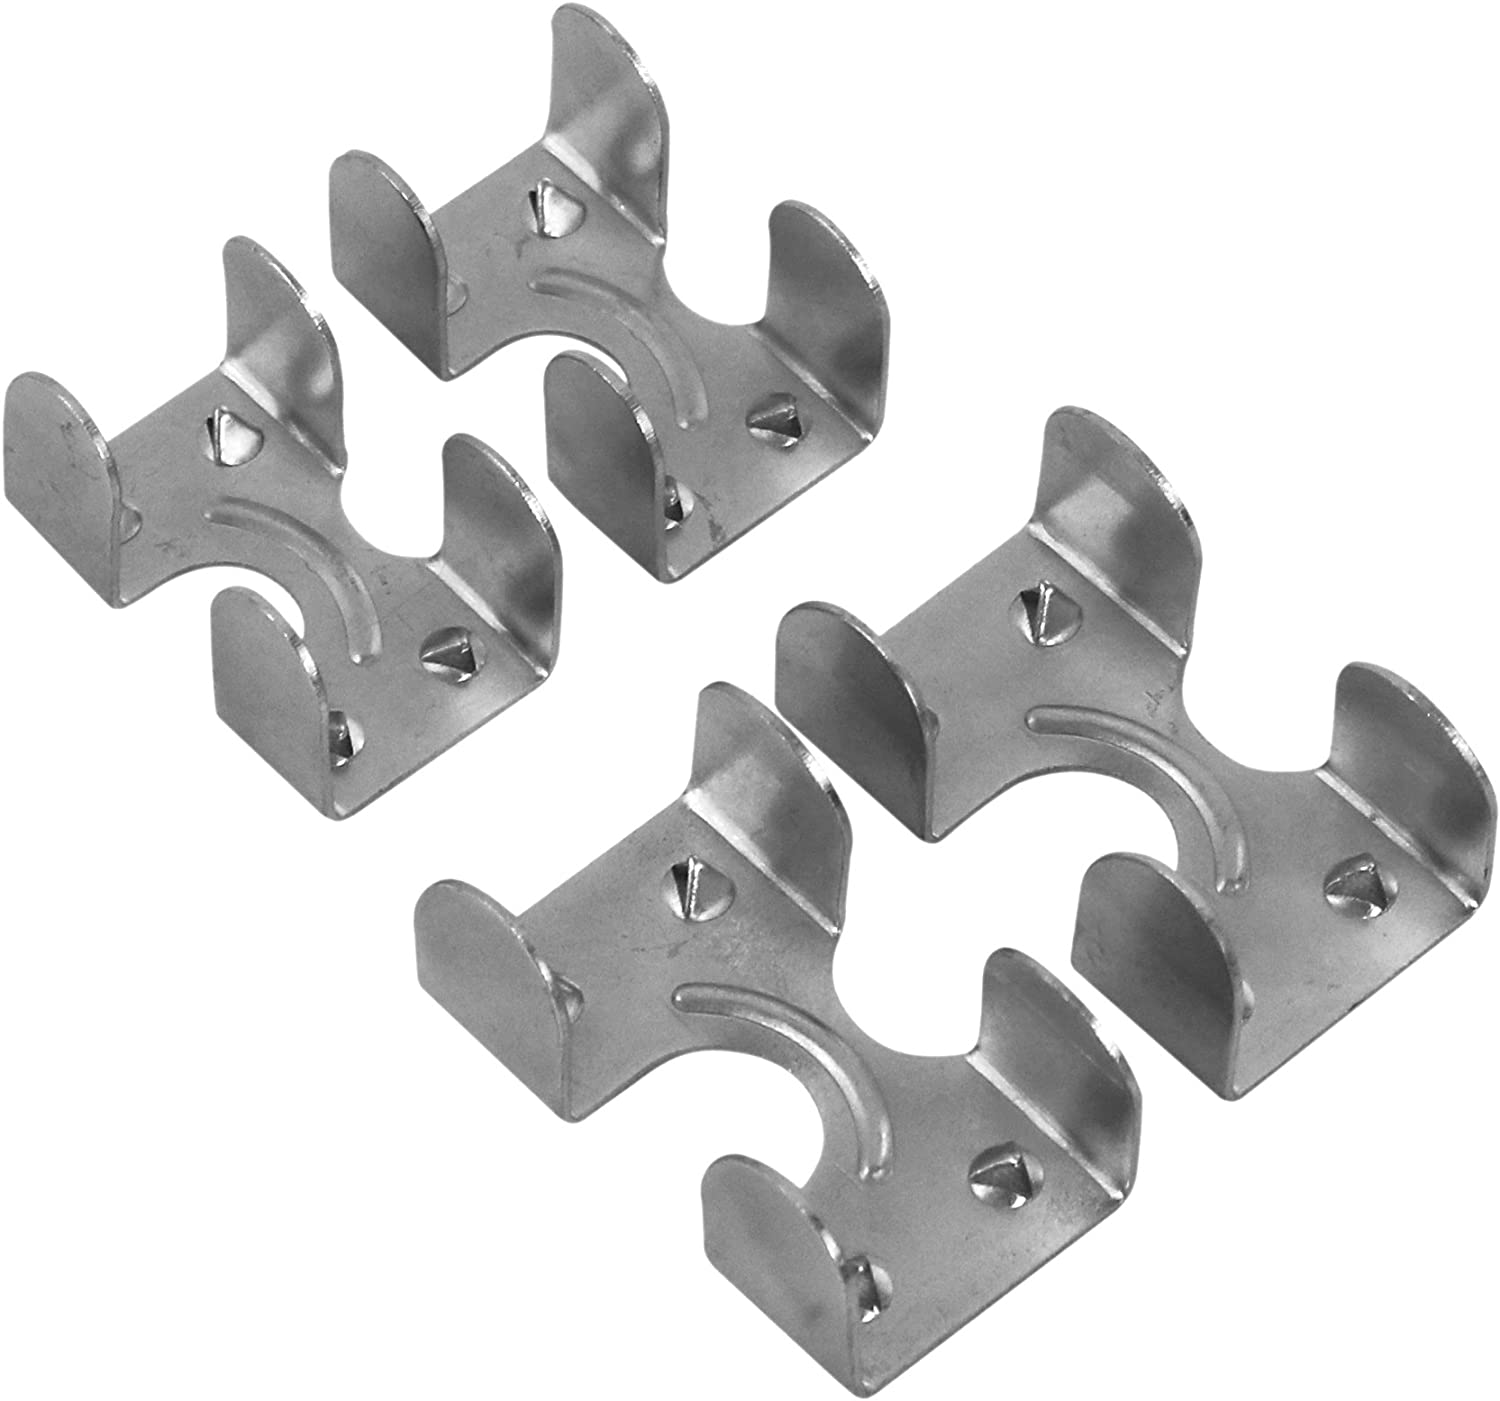 3//8 Inch and 1//2 Inch Rope Clamps 12 Total Clamps